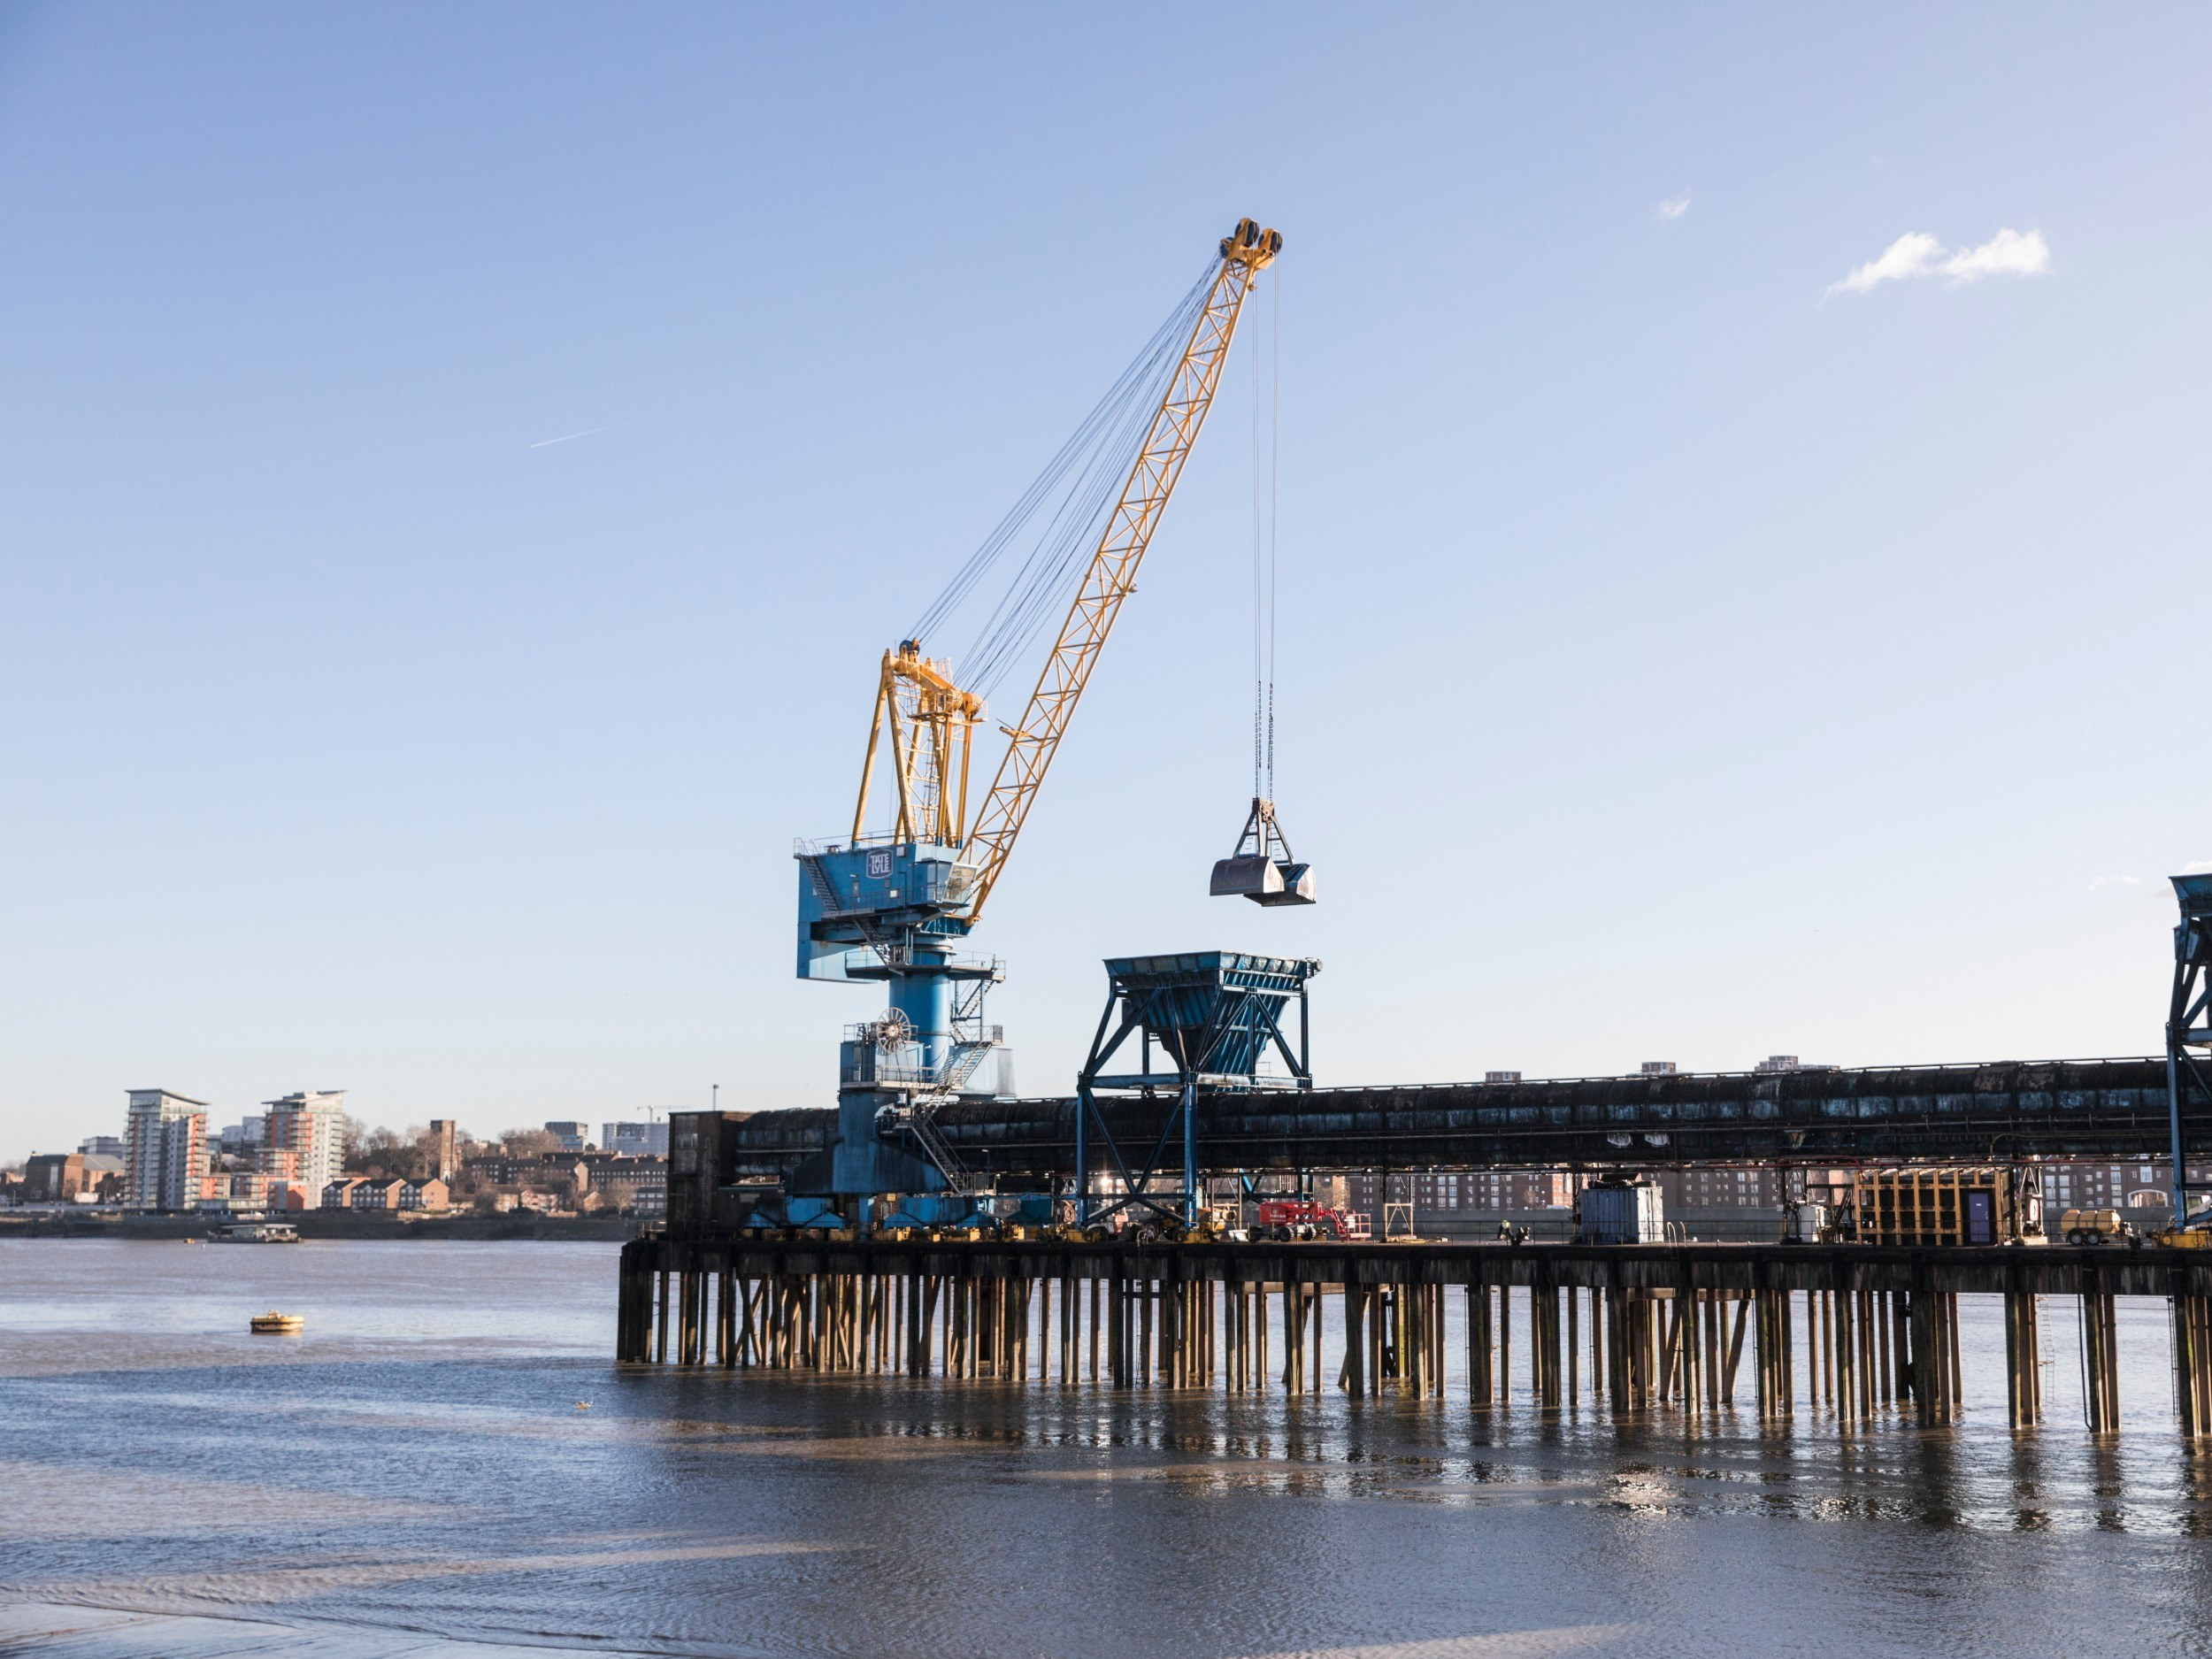 A pier jutting out into the river, with a crane on the end of it